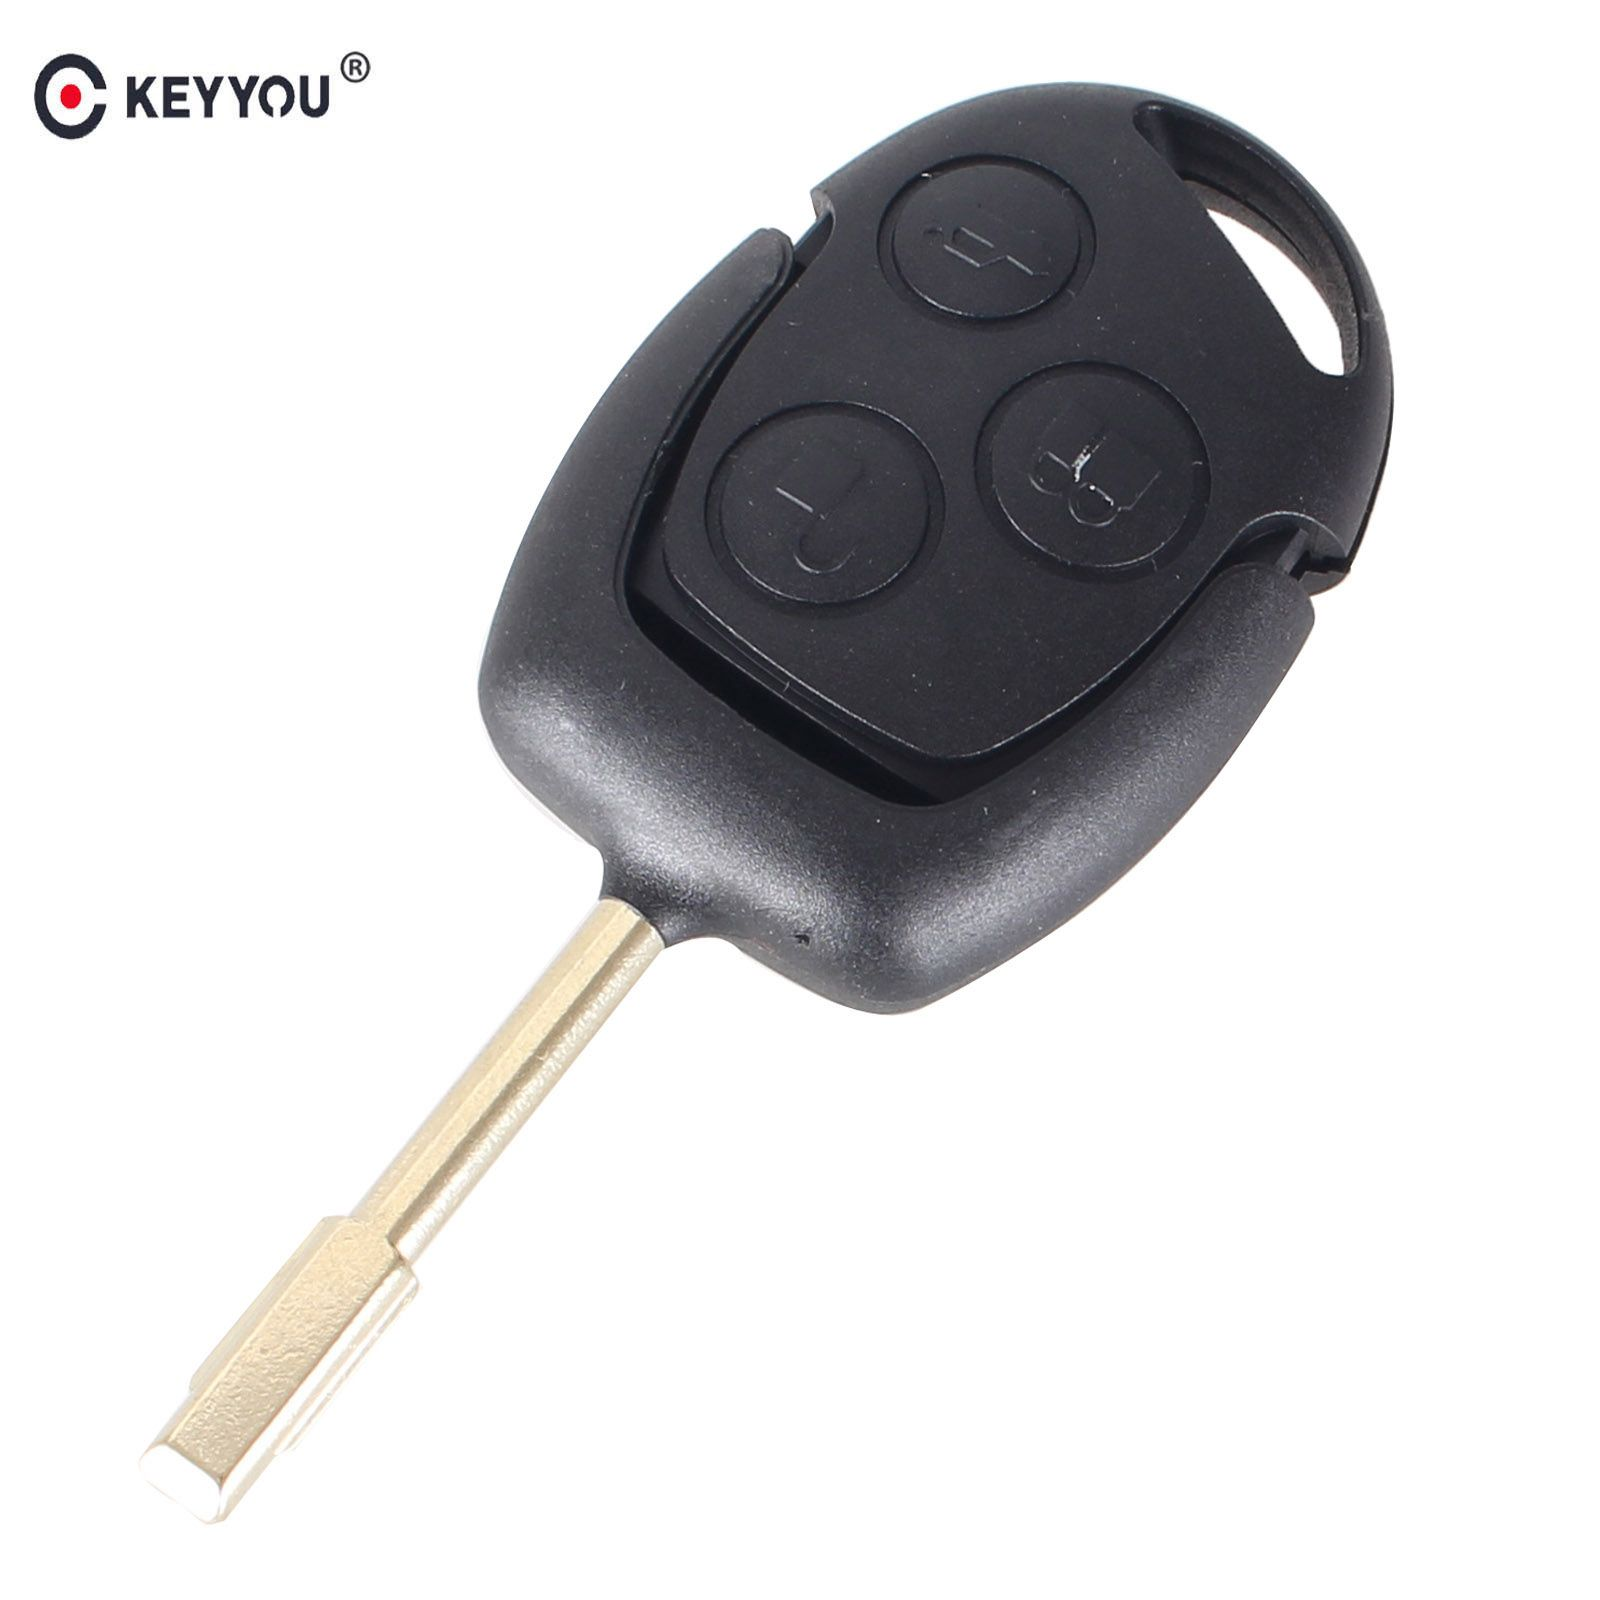 Keyyou  Mhz Remote Entry Key Fob For Ford Mondeo Fiesta